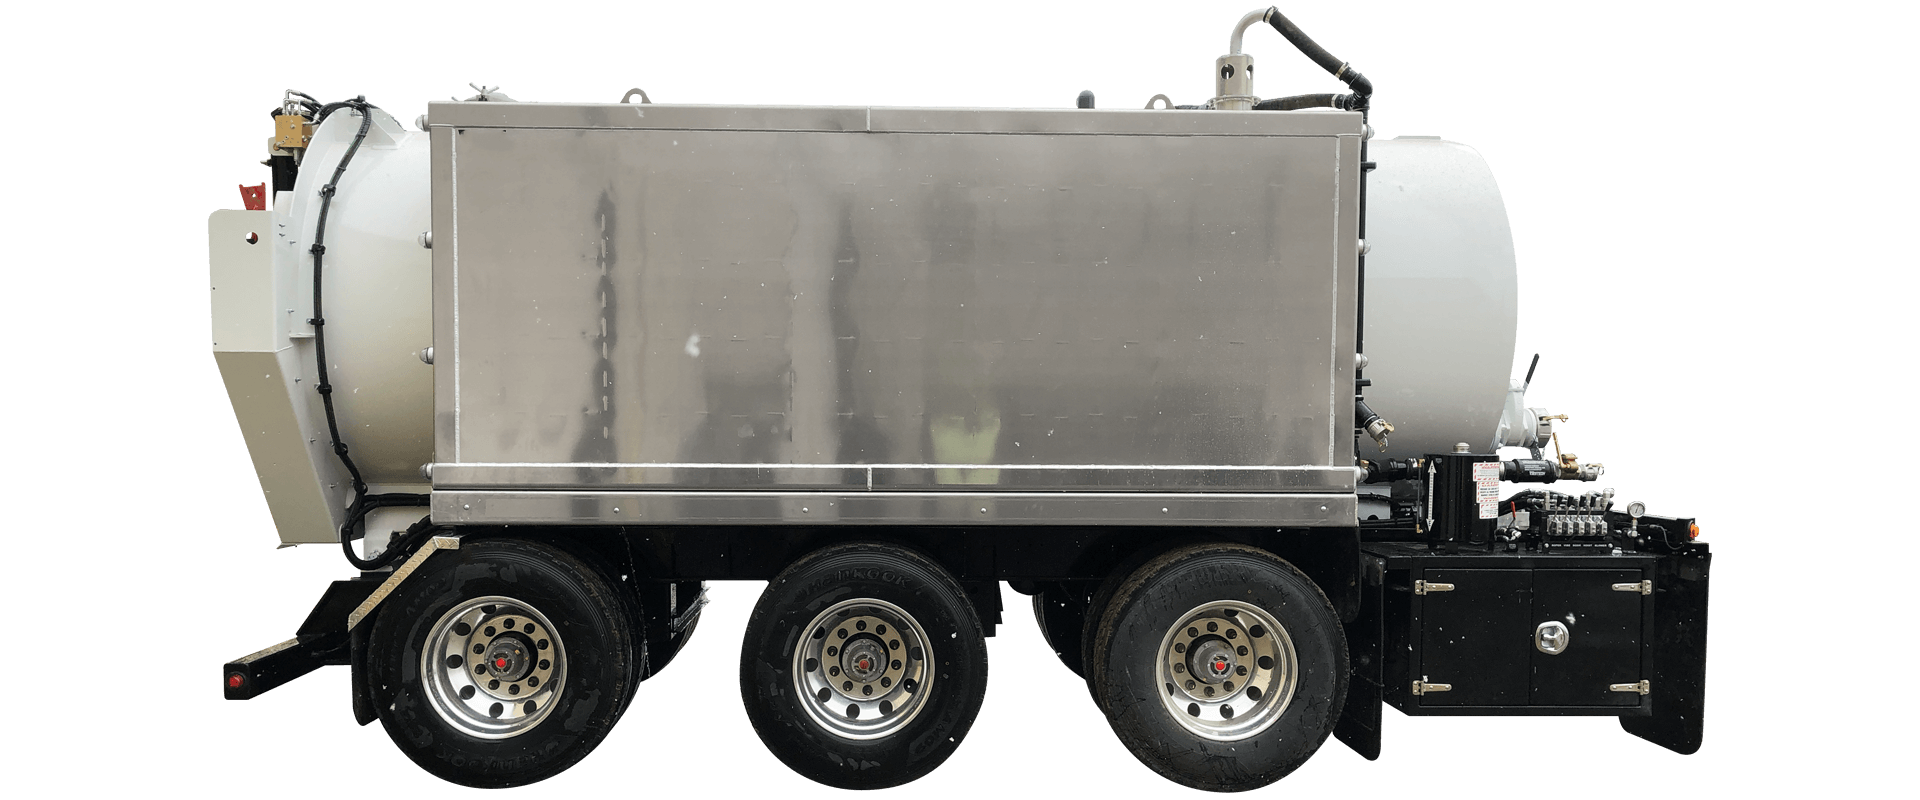 PupTrailer-ProductPage-12.19